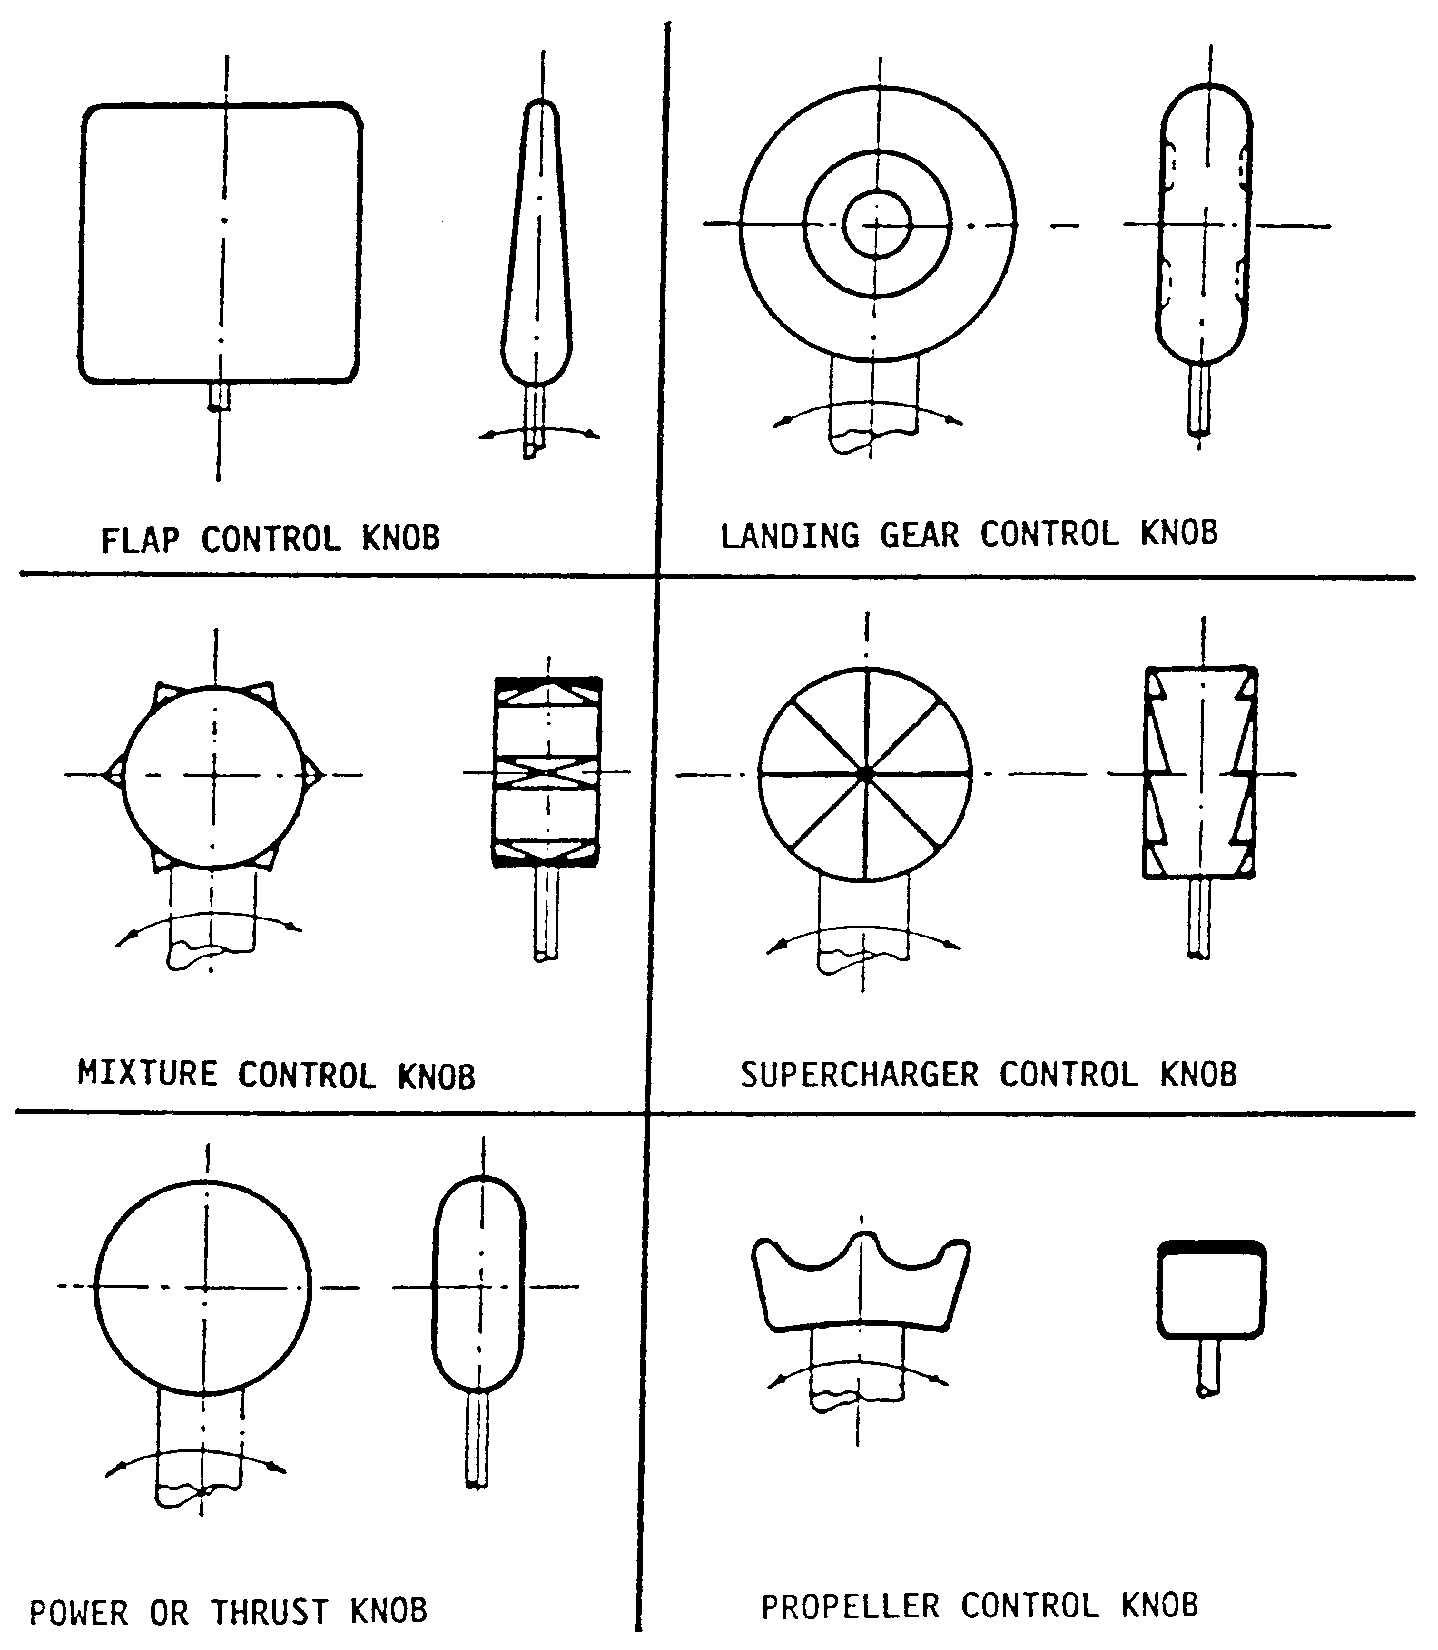 Graphic of Cockpit control knobs must conform to the general shapes (but not necessarily the exact sizes or specific proportions) in the following figure